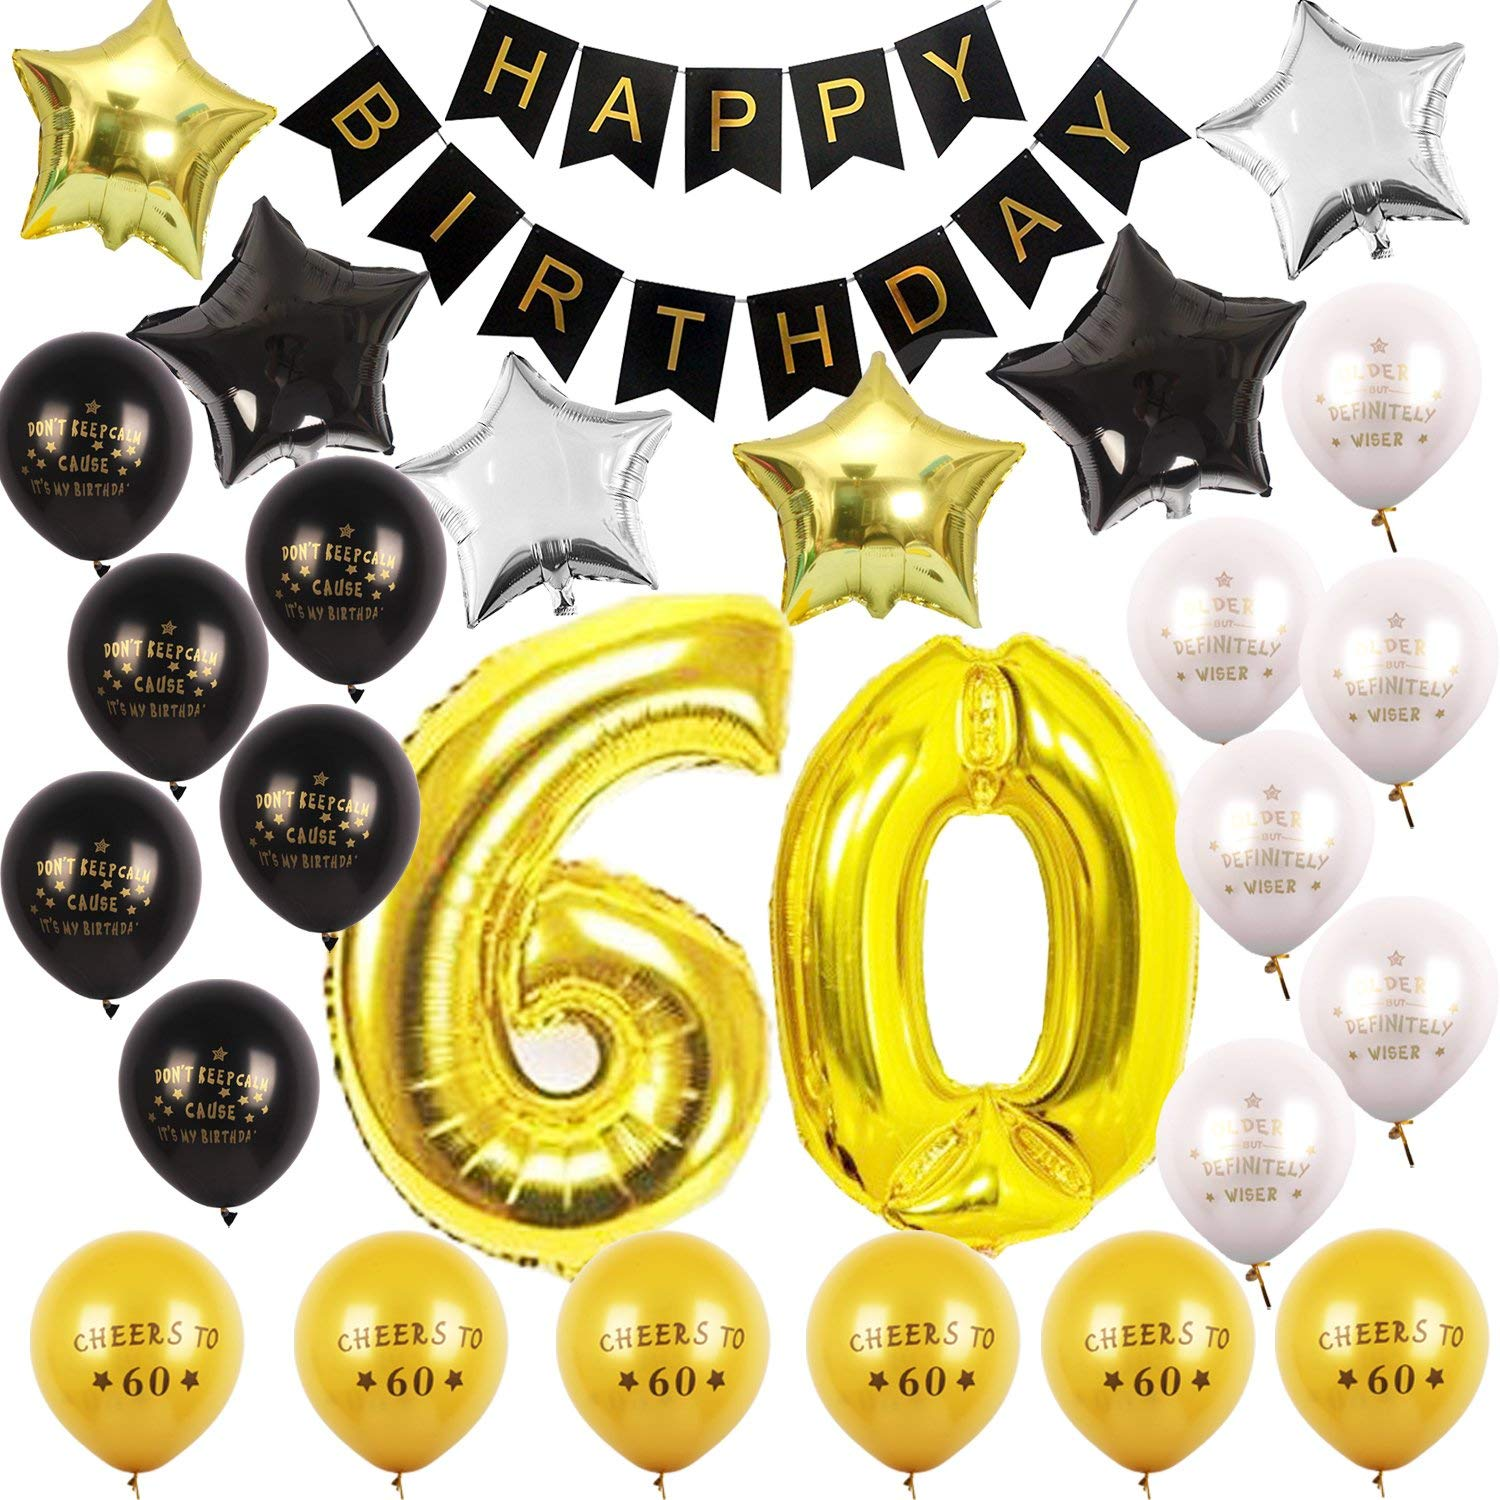 60th BIRTHDAY PARTY DECORATIONS KIT - Happy Birthday Black Banner, 60th Gold Number Balloons,Gold, Black and White with Printed Latex Balloons Number 60, Perfect 60 Years Old Party Supplies Bday free